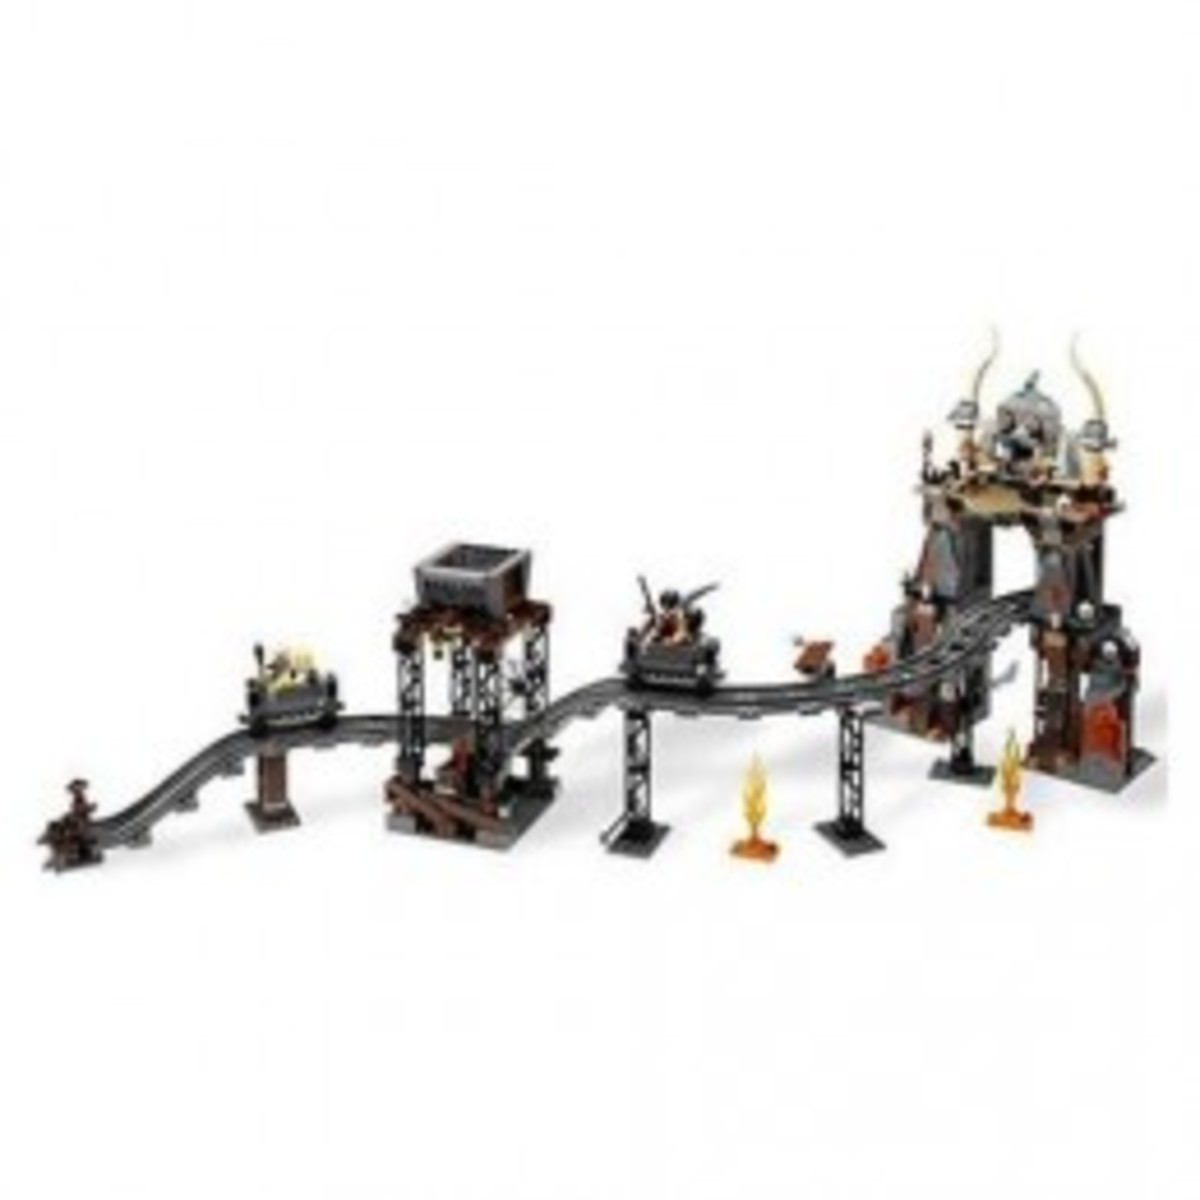 Lego Indiana Jones The Temple of Doom 7199 Assembled